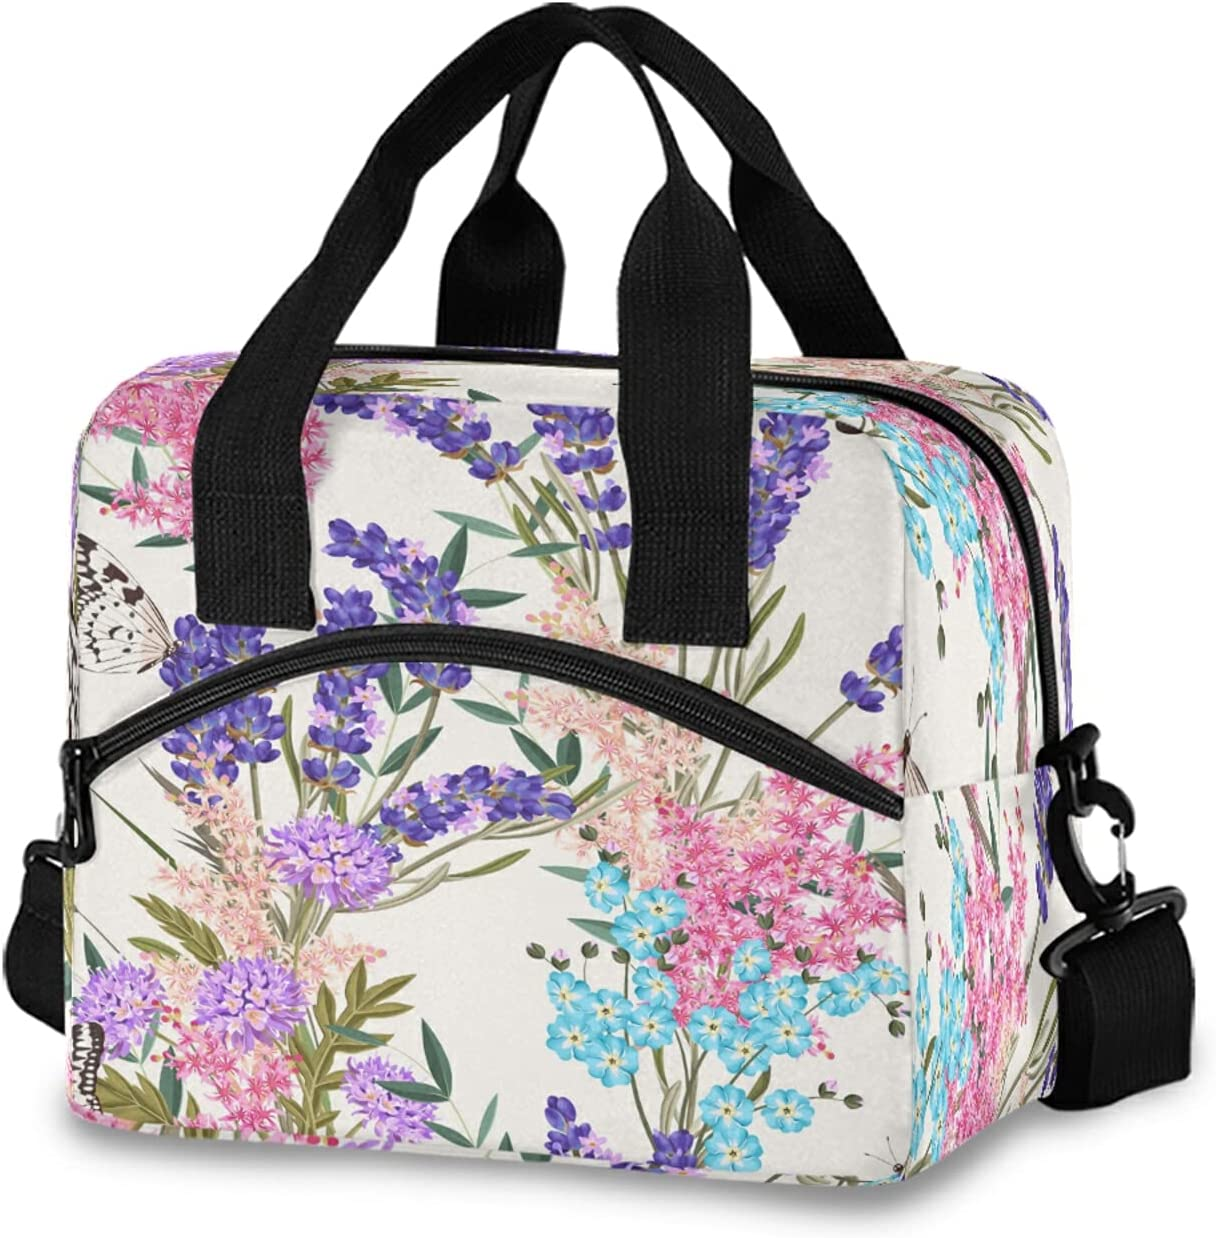 KEEPREAL Butterfly Lavender Print Max 43% OFF Insulated with NEW Bag Shoul Lunch